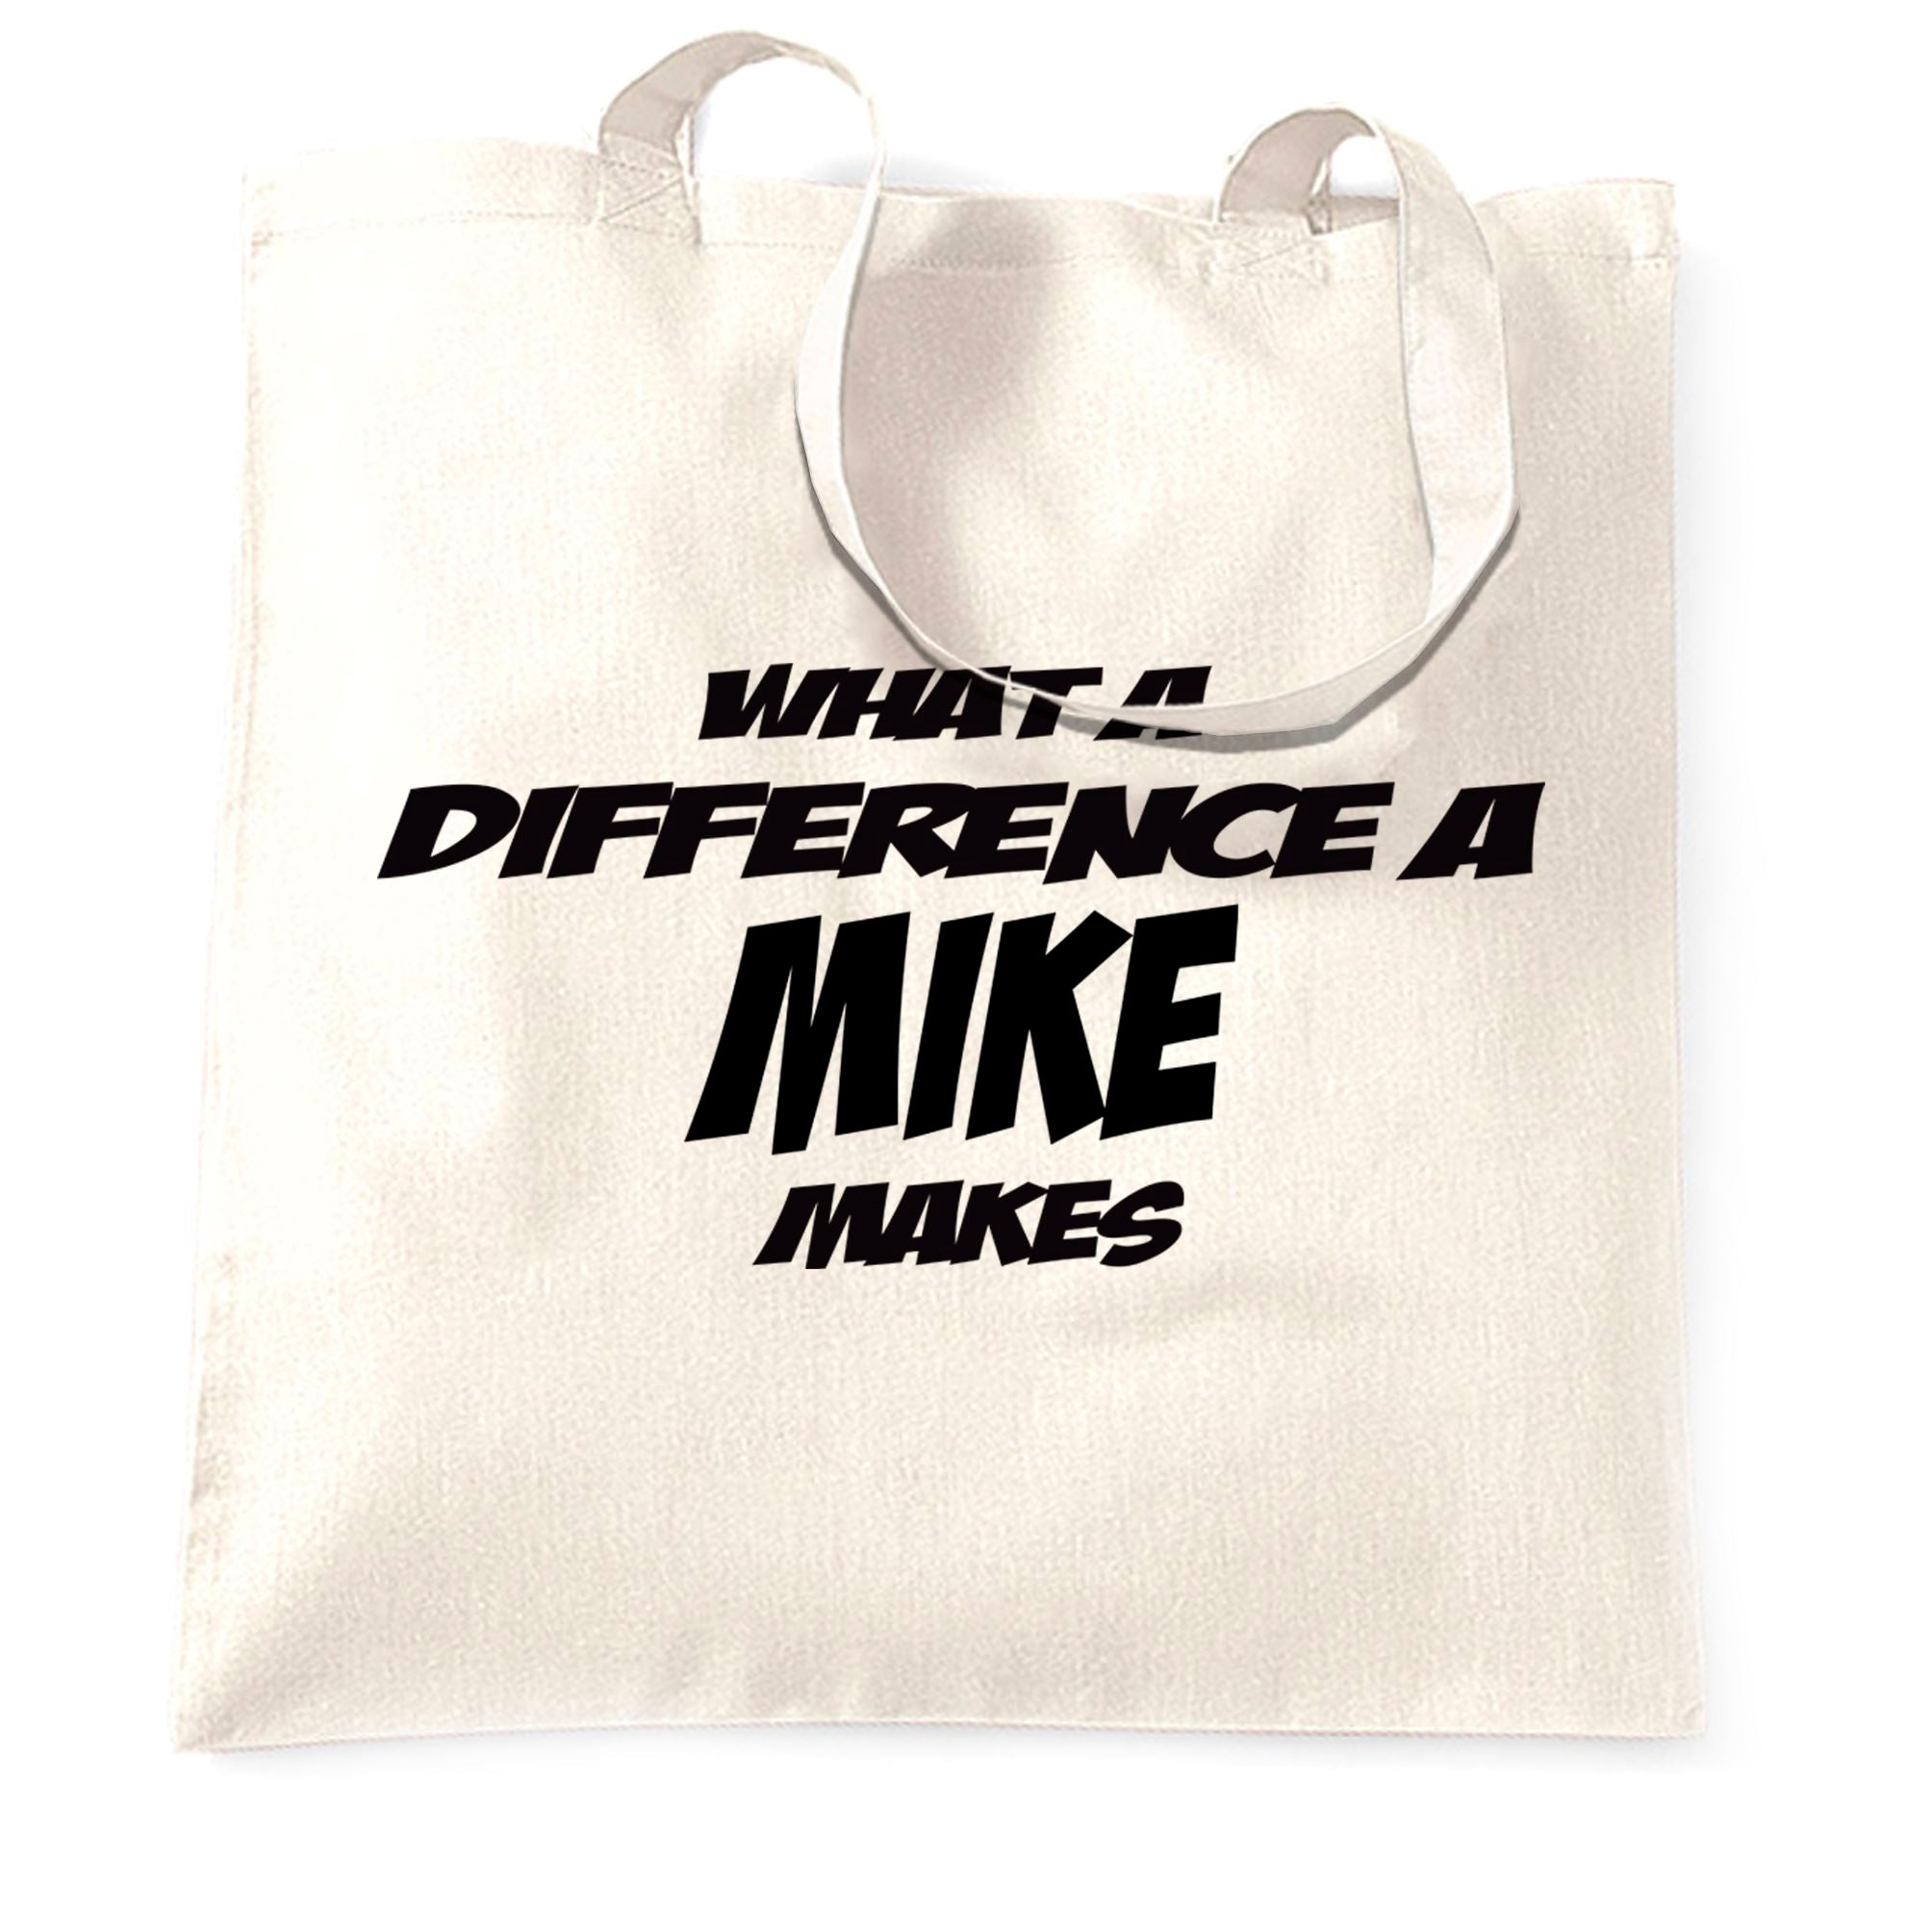 Novelty Tote Bag What A Difference A Mike Makes